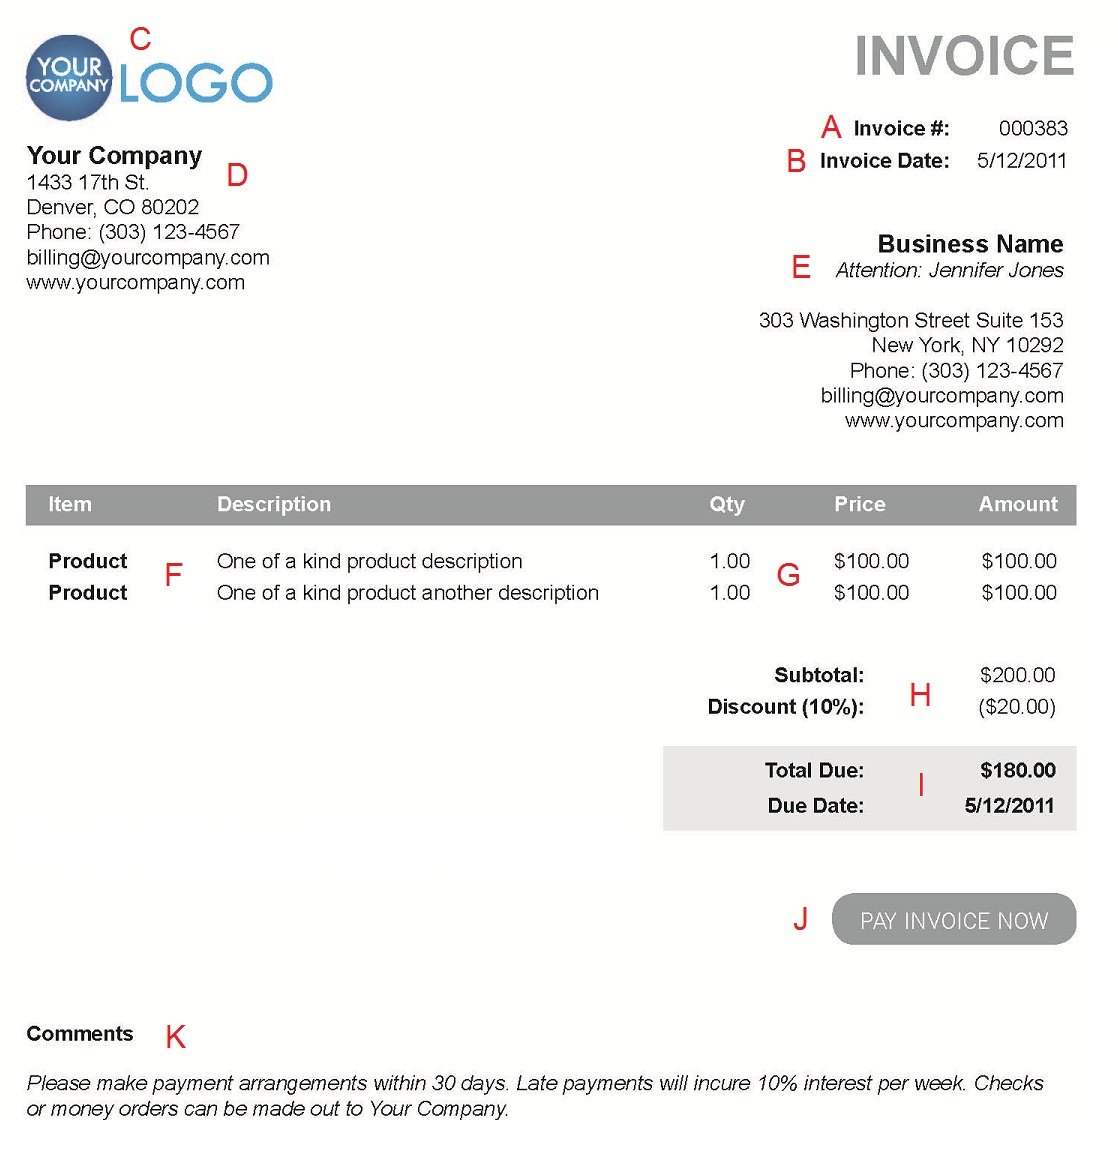 Ultrablogus  Nice The  Different Sections Of An Electronic Payment Invoice With Outstanding A  With Alluring Honda Accord  Invoice Price Also Ebay Buyer Invoice In Addition Invoice Design Template And Florida Toll By Plate Invoice As Well As Open Office Invoice Templates Additionally Free Invoicing Online From Paysimplecom With Ultrablogus  Outstanding The  Different Sections Of An Electronic Payment Invoice With Alluring A  And Nice Honda Accord  Invoice Price Also Ebay Buyer Invoice In Addition Invoice Design Template From Paysimplecom